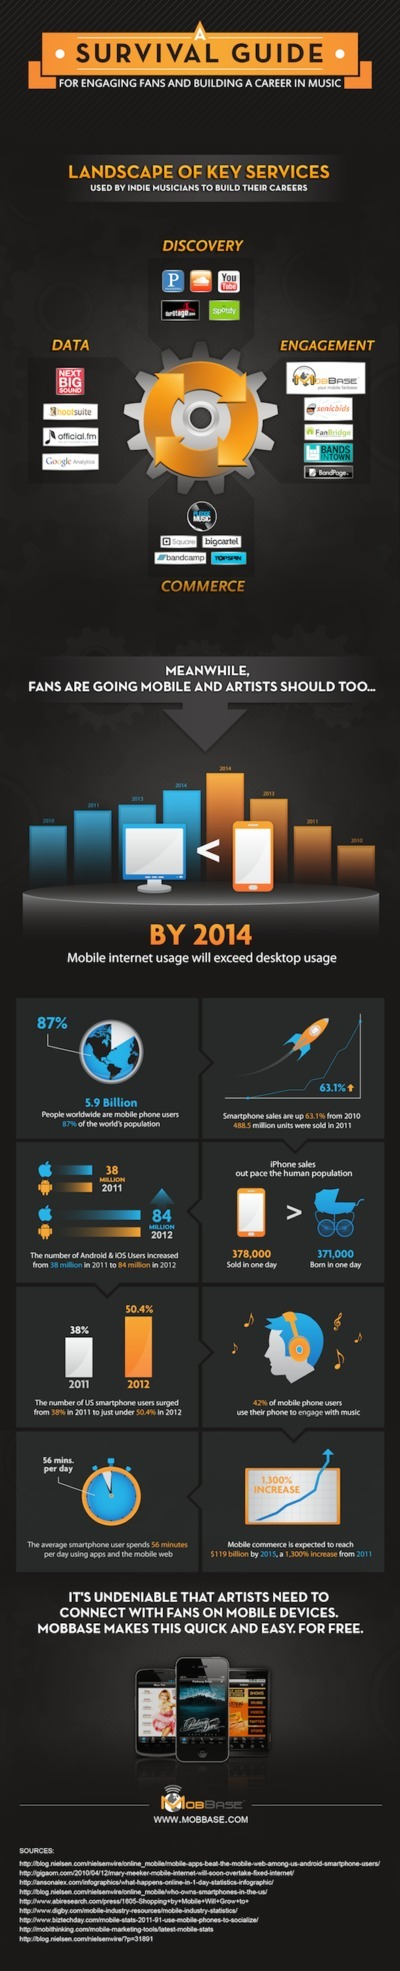 A Look Into The Mobile Future [INFOGRAPHIC] - hypebot | Kill The Record Industry | Scoop.it